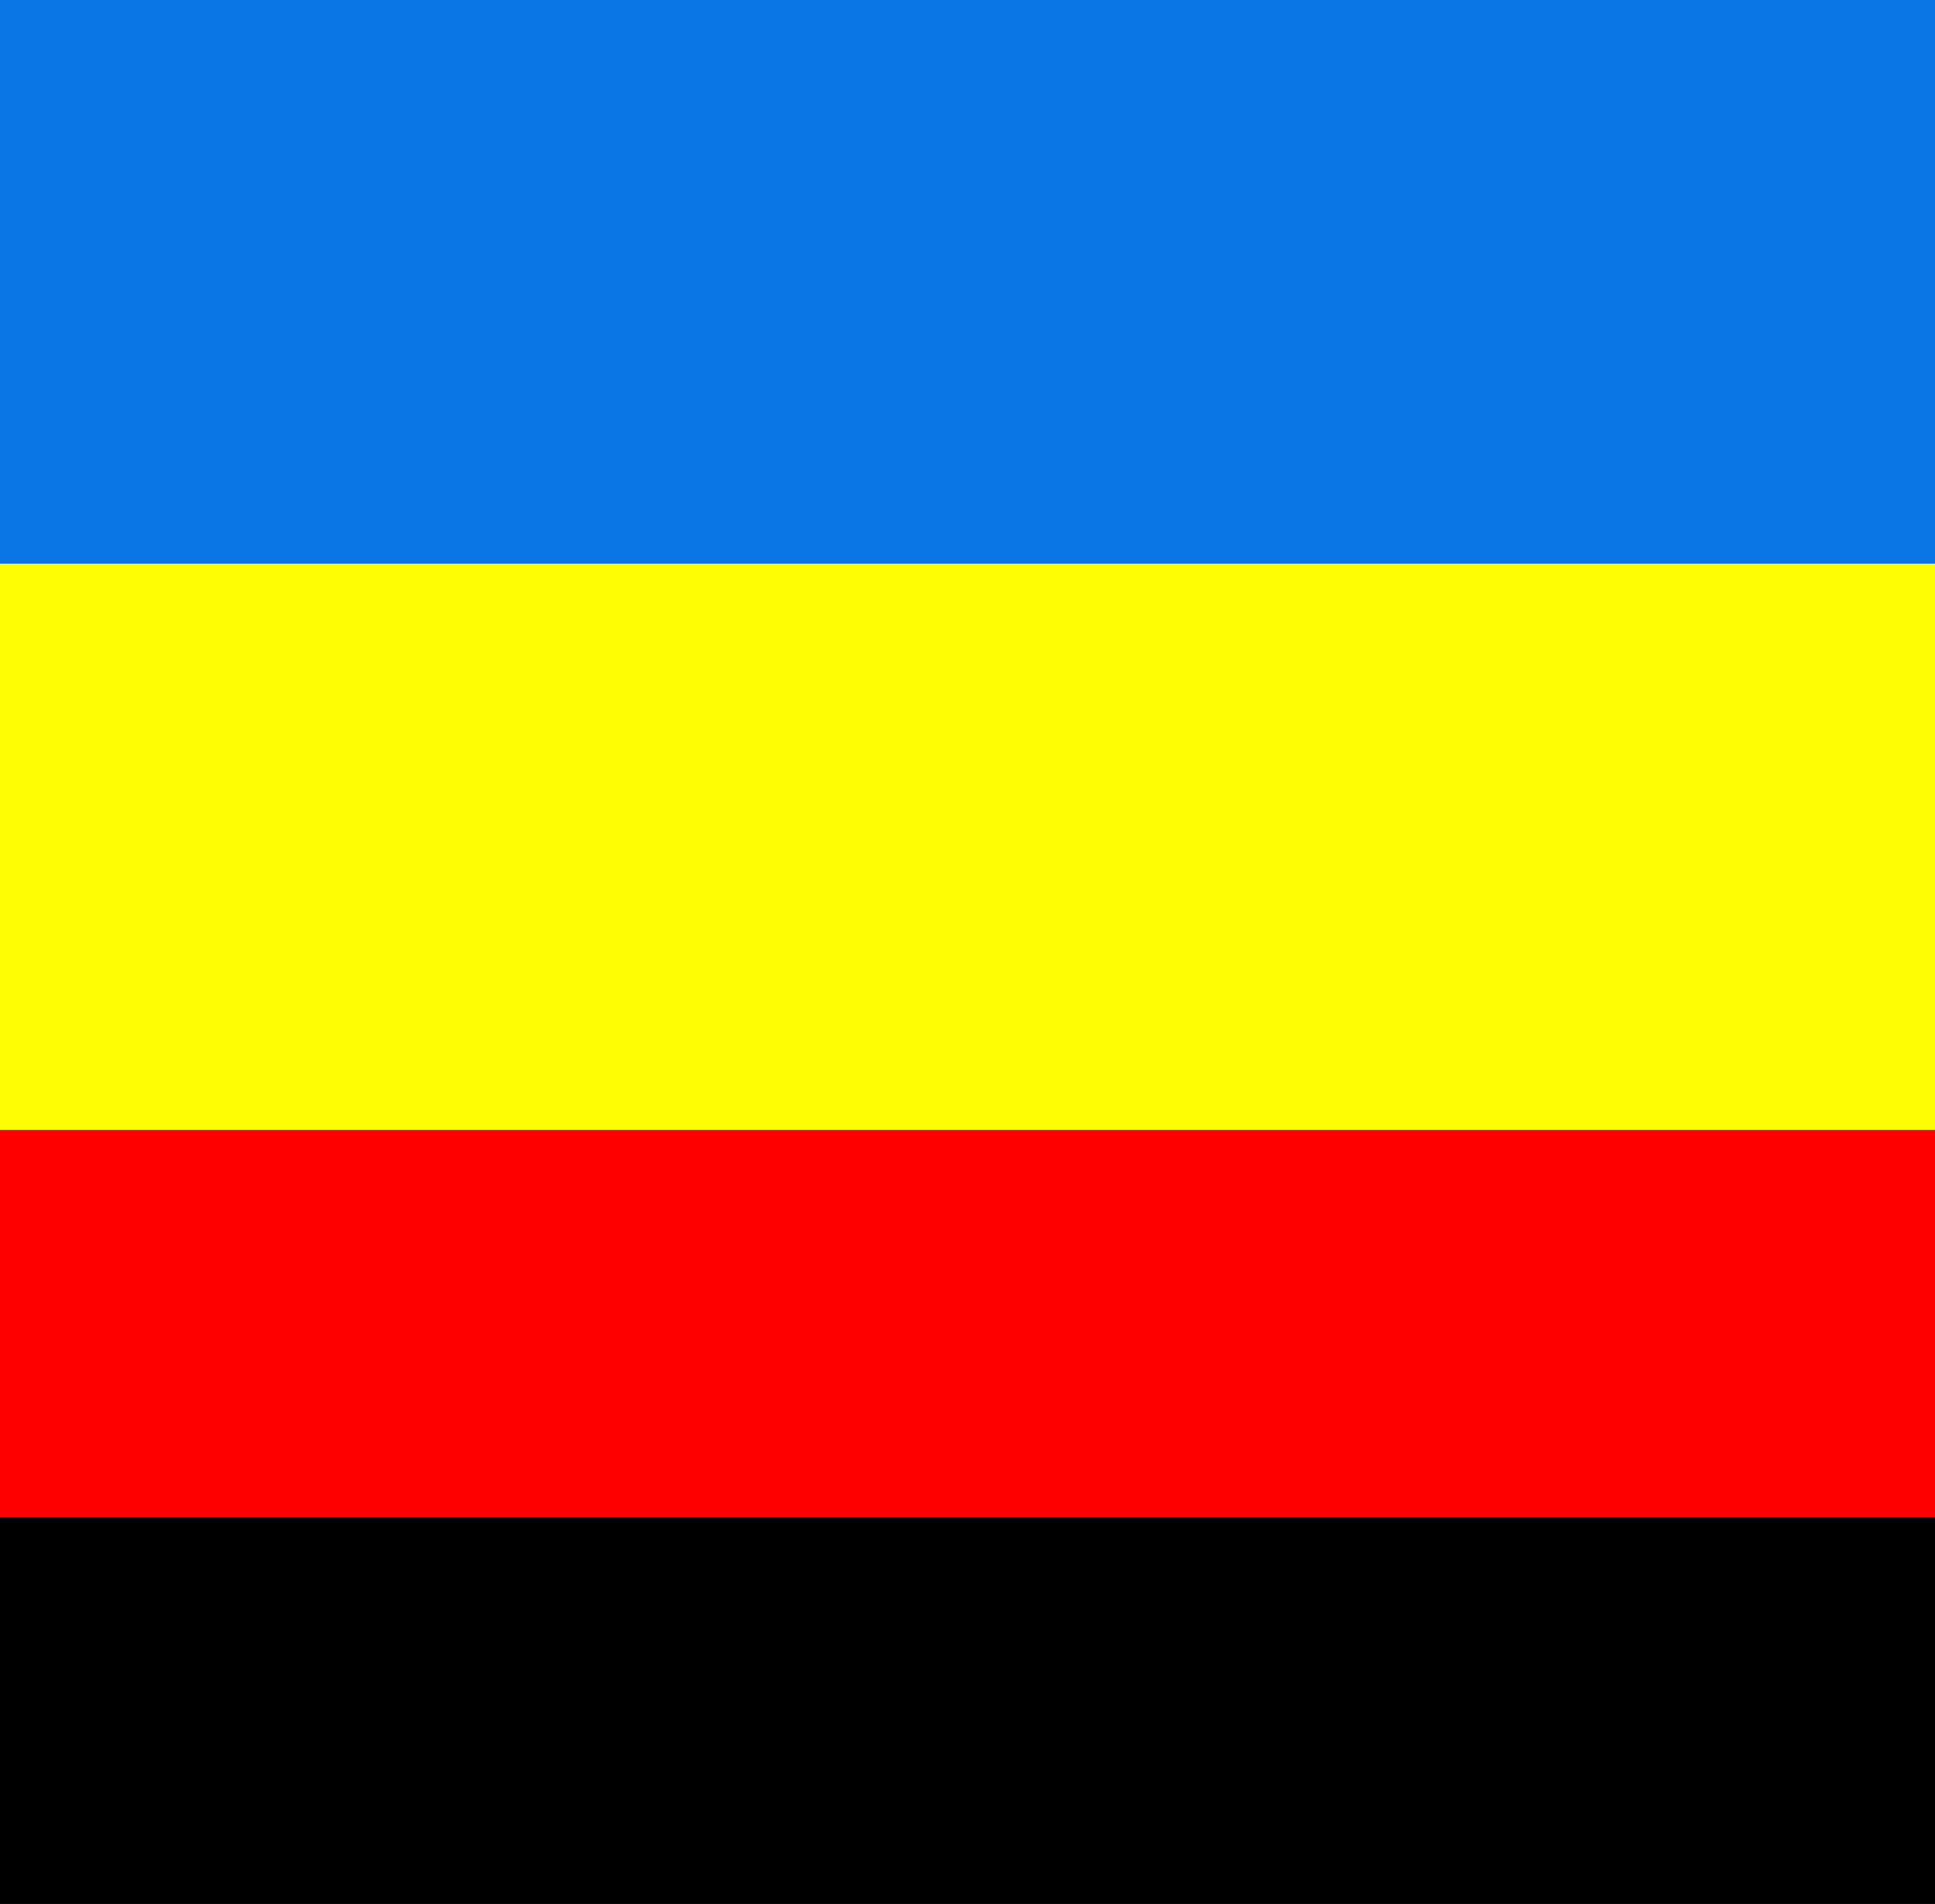 Flag Of Ukraine High Quality Background on Wallpapers Vista